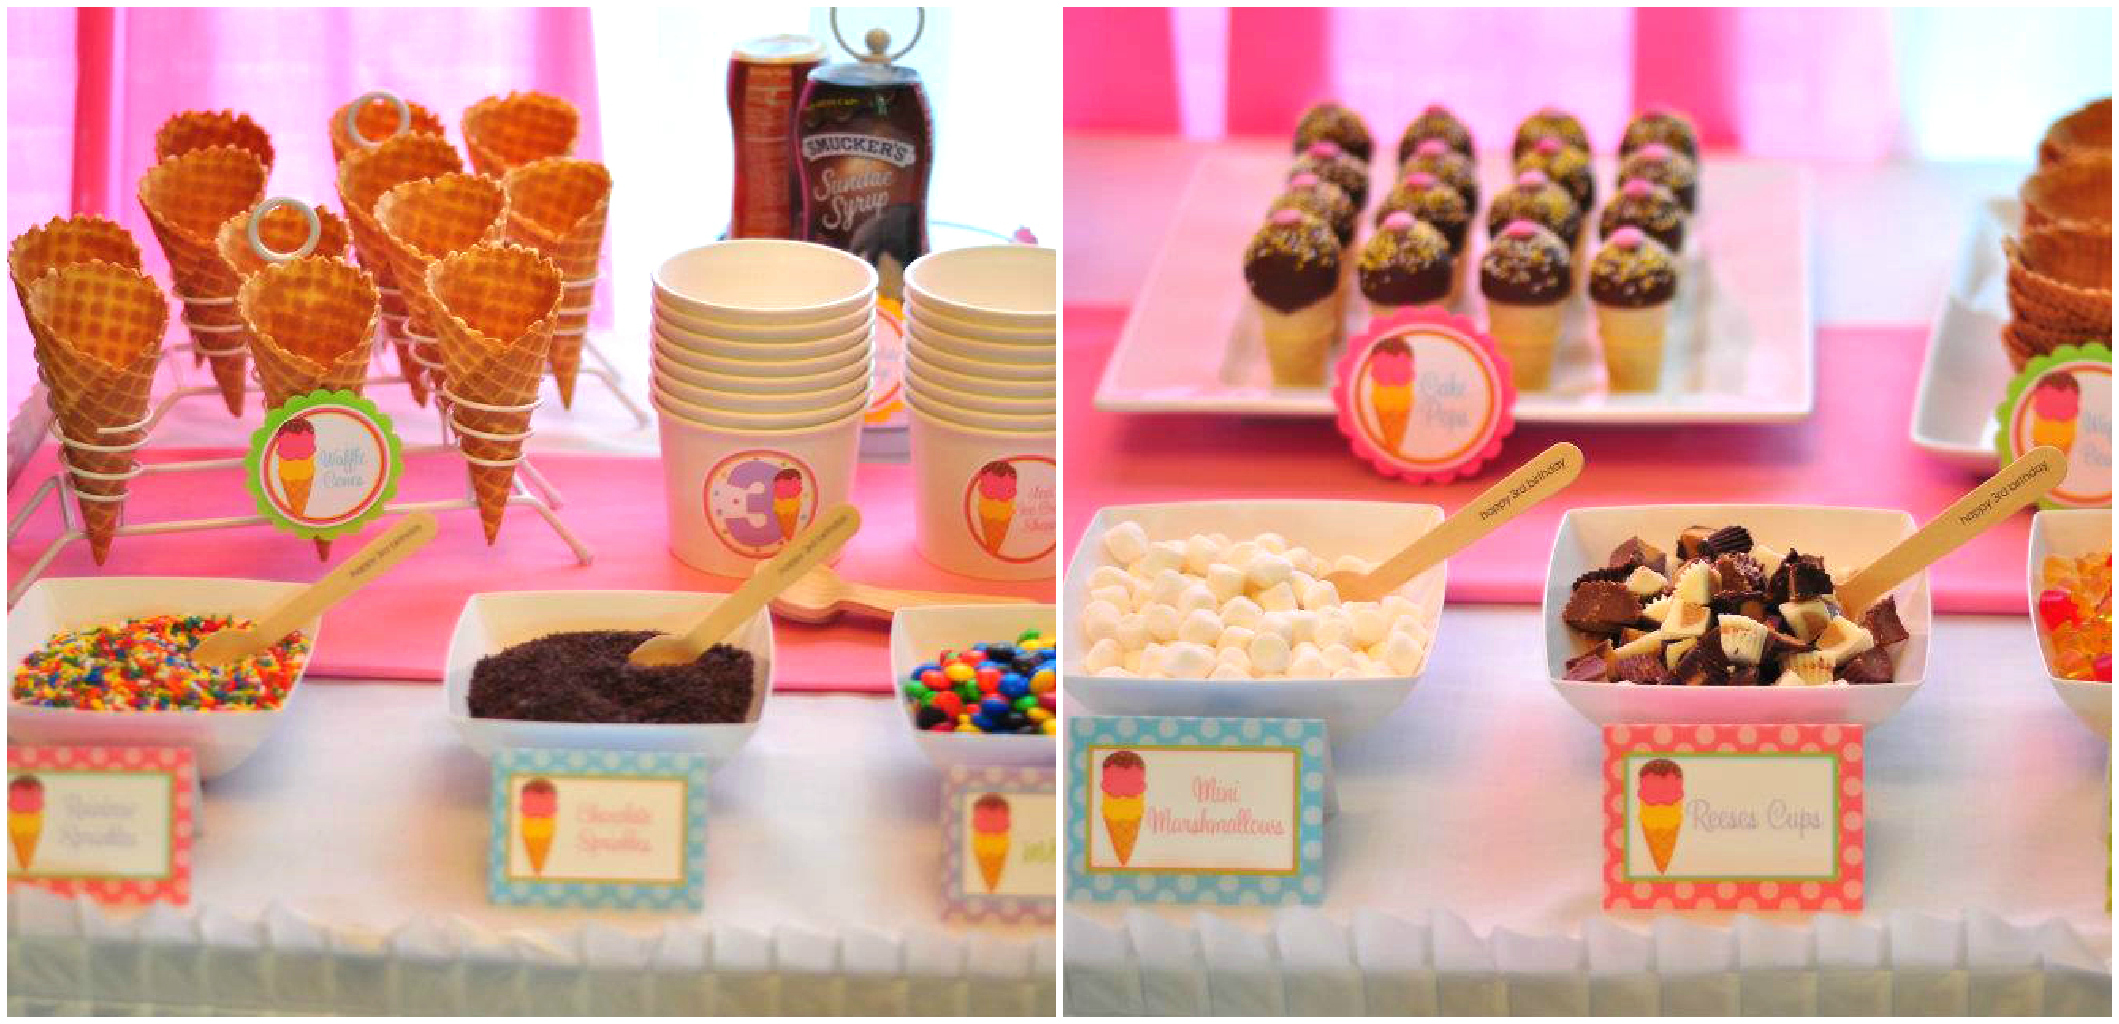 Amazing Ice Cream Party Display